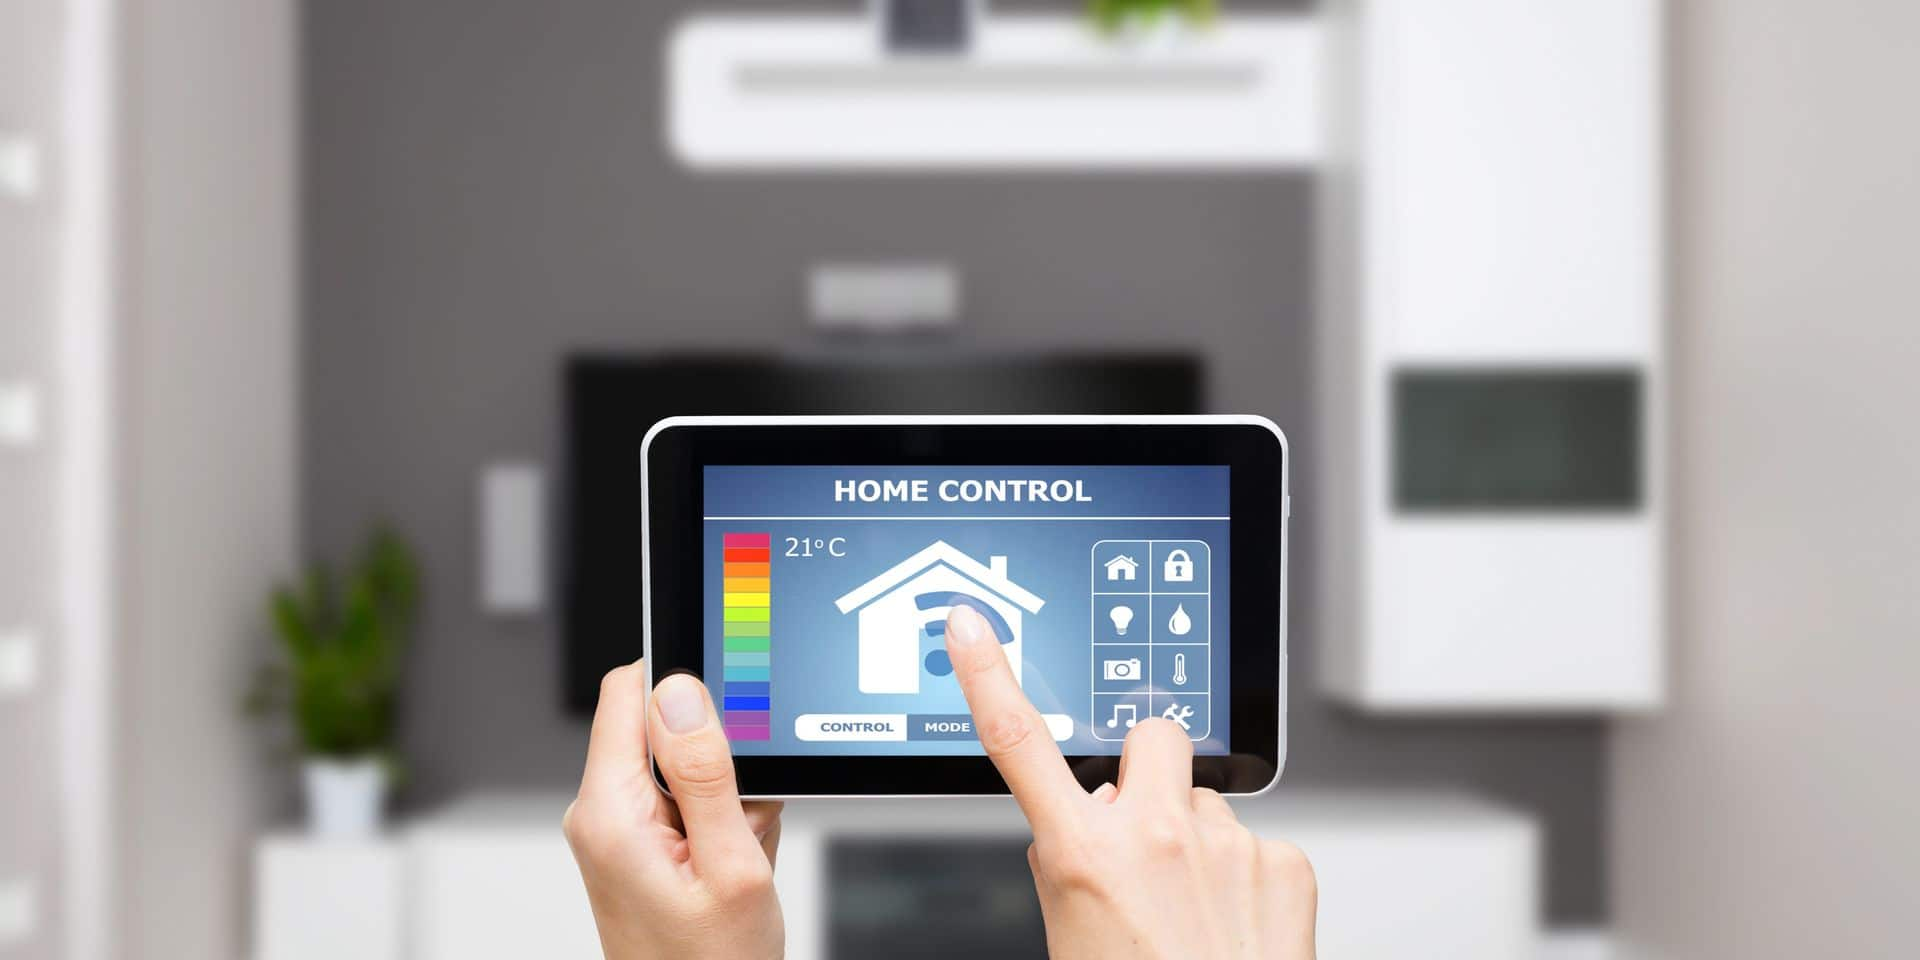 Remote,Home,Control,System,On,A,Digital,Tablet,Or,Phone.